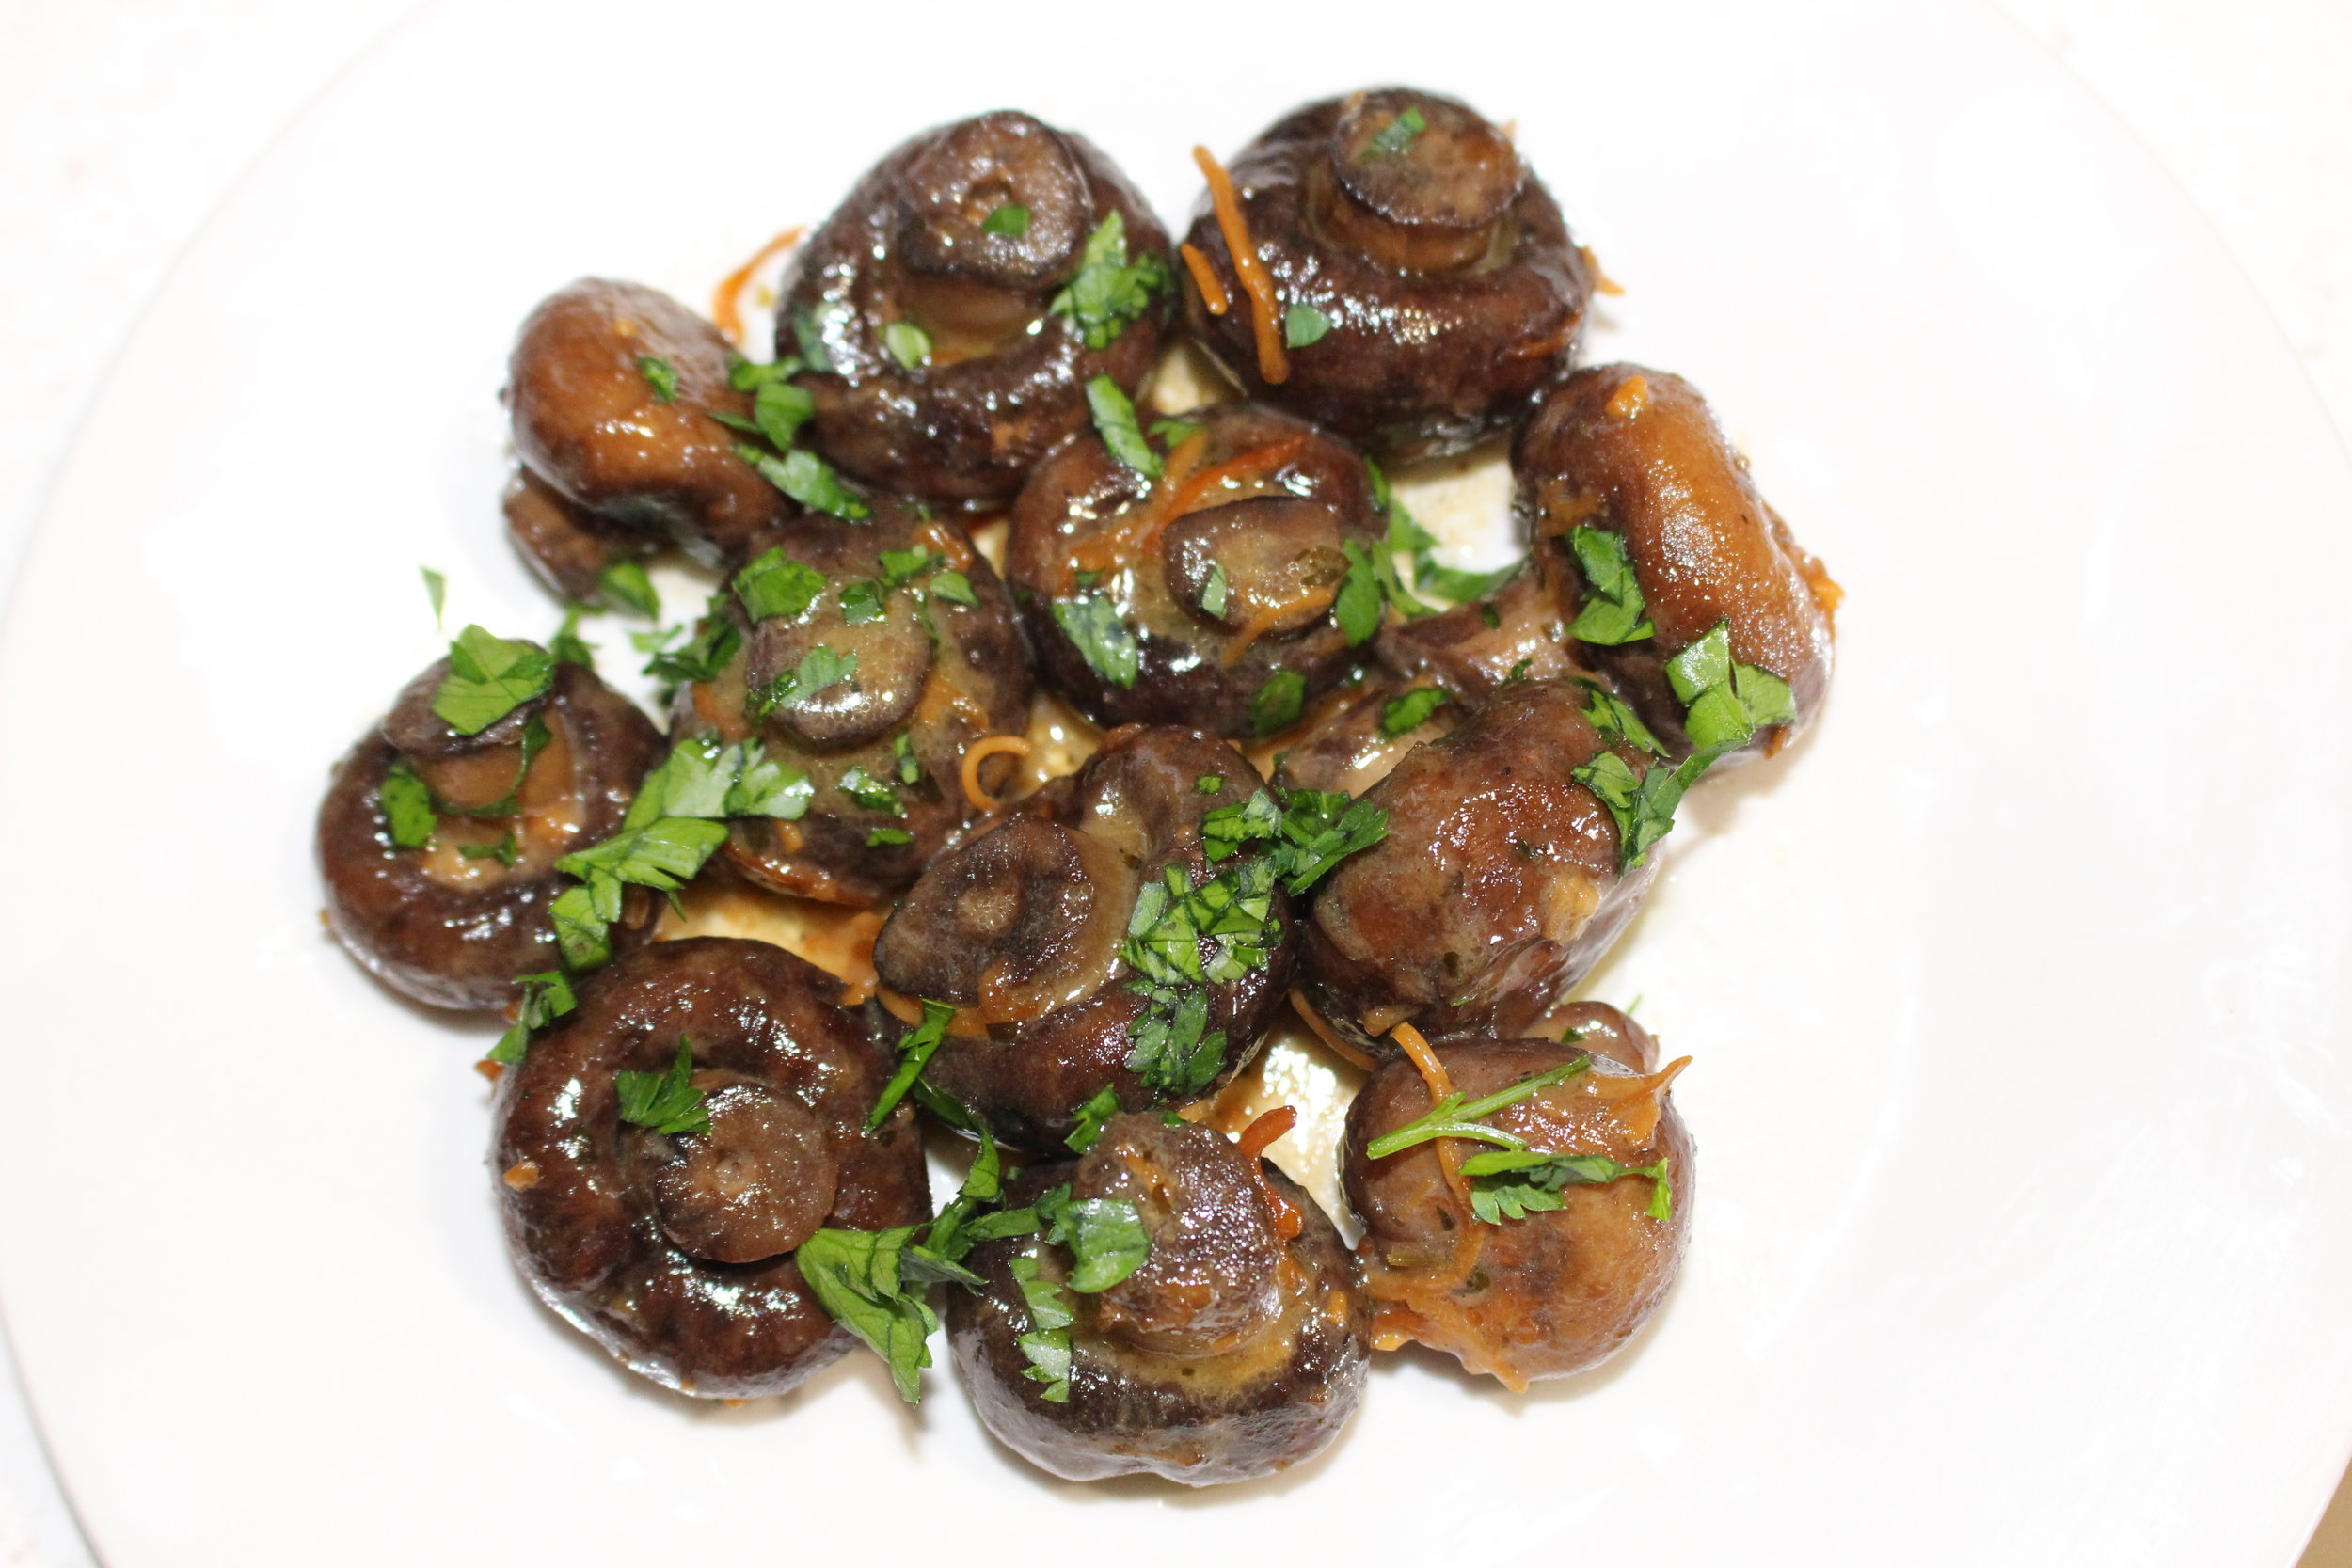 mushrooms and parsley keto in the city